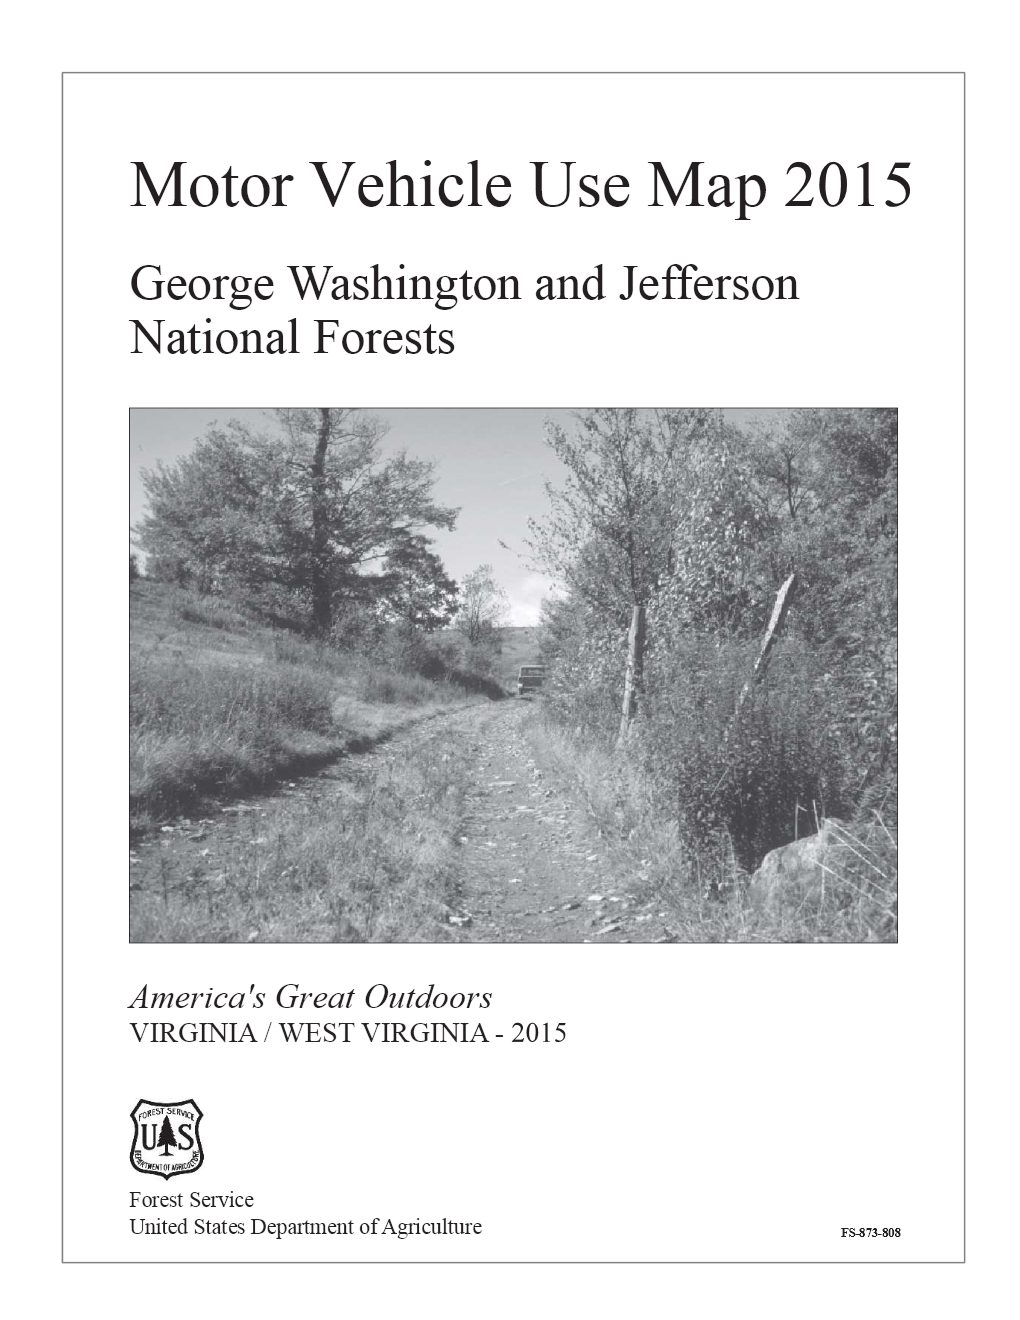 Cover of the 2015 MVUM document with image of dirt road